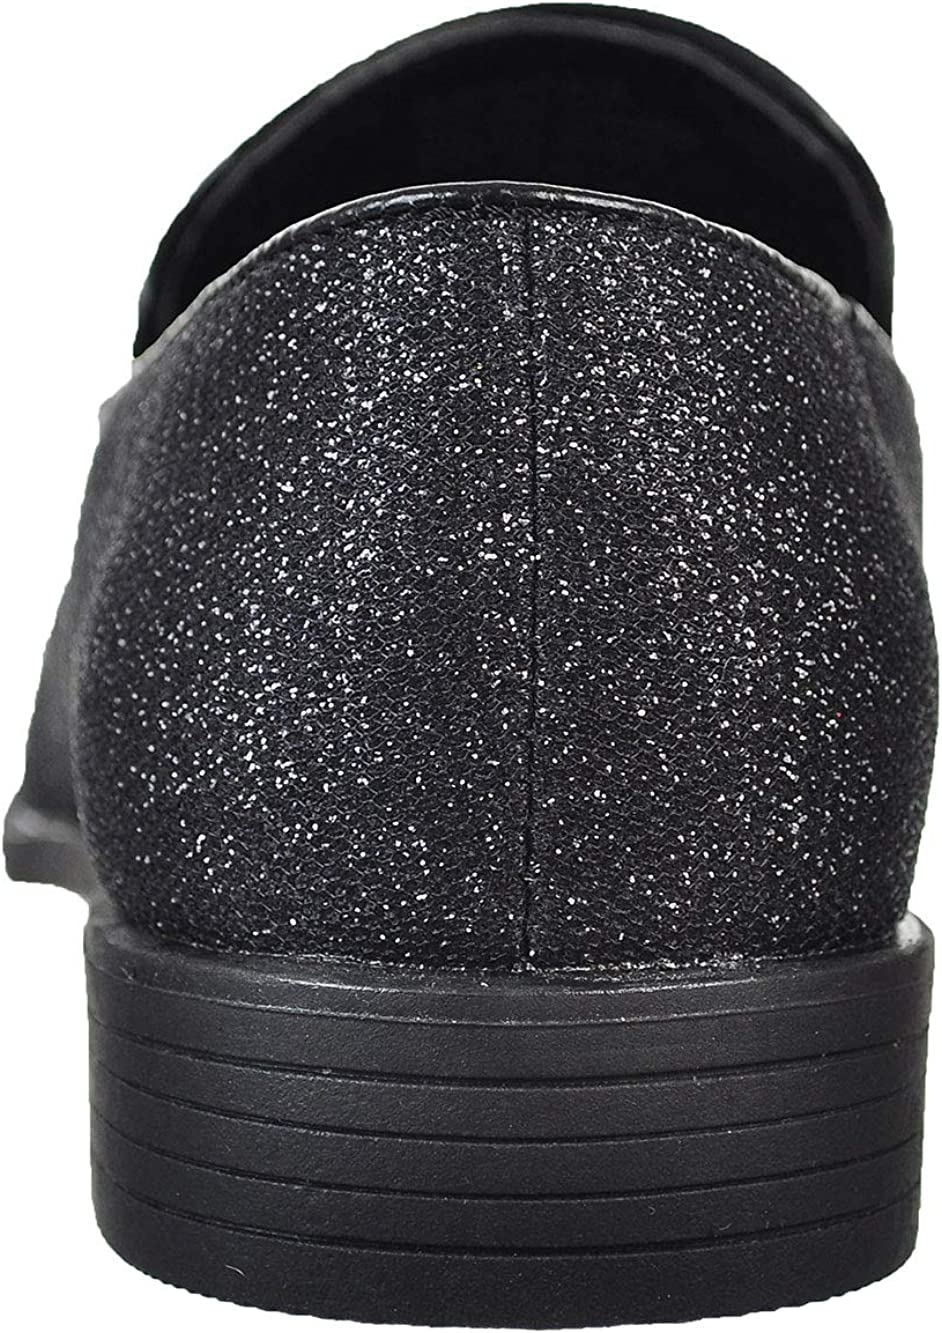 Jodano Collection Boys Glitter Loafers